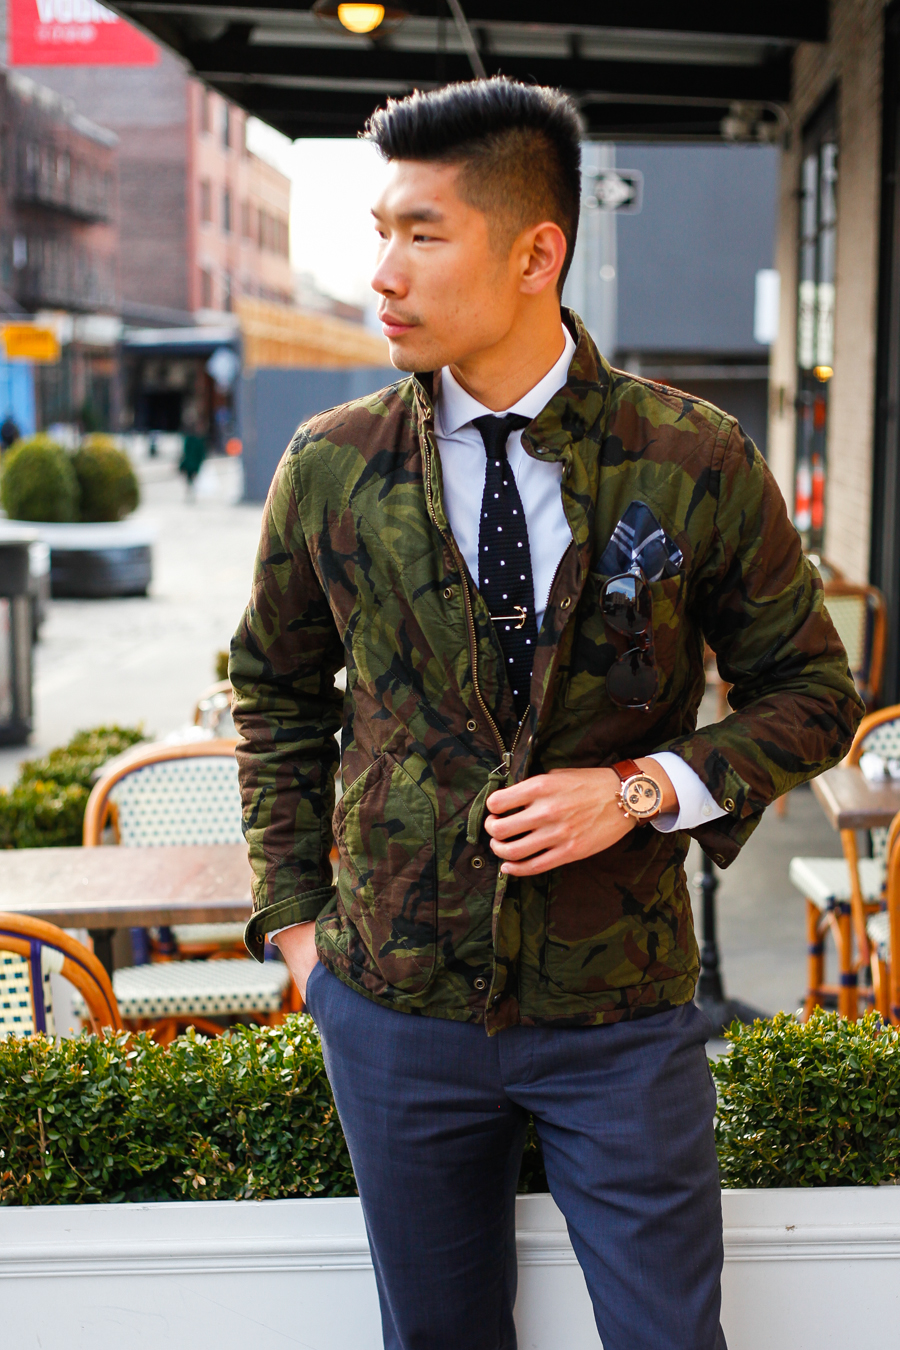 Levitate Style - J. Crew Camo Jacket, Filippo Loreti, Gents Mode